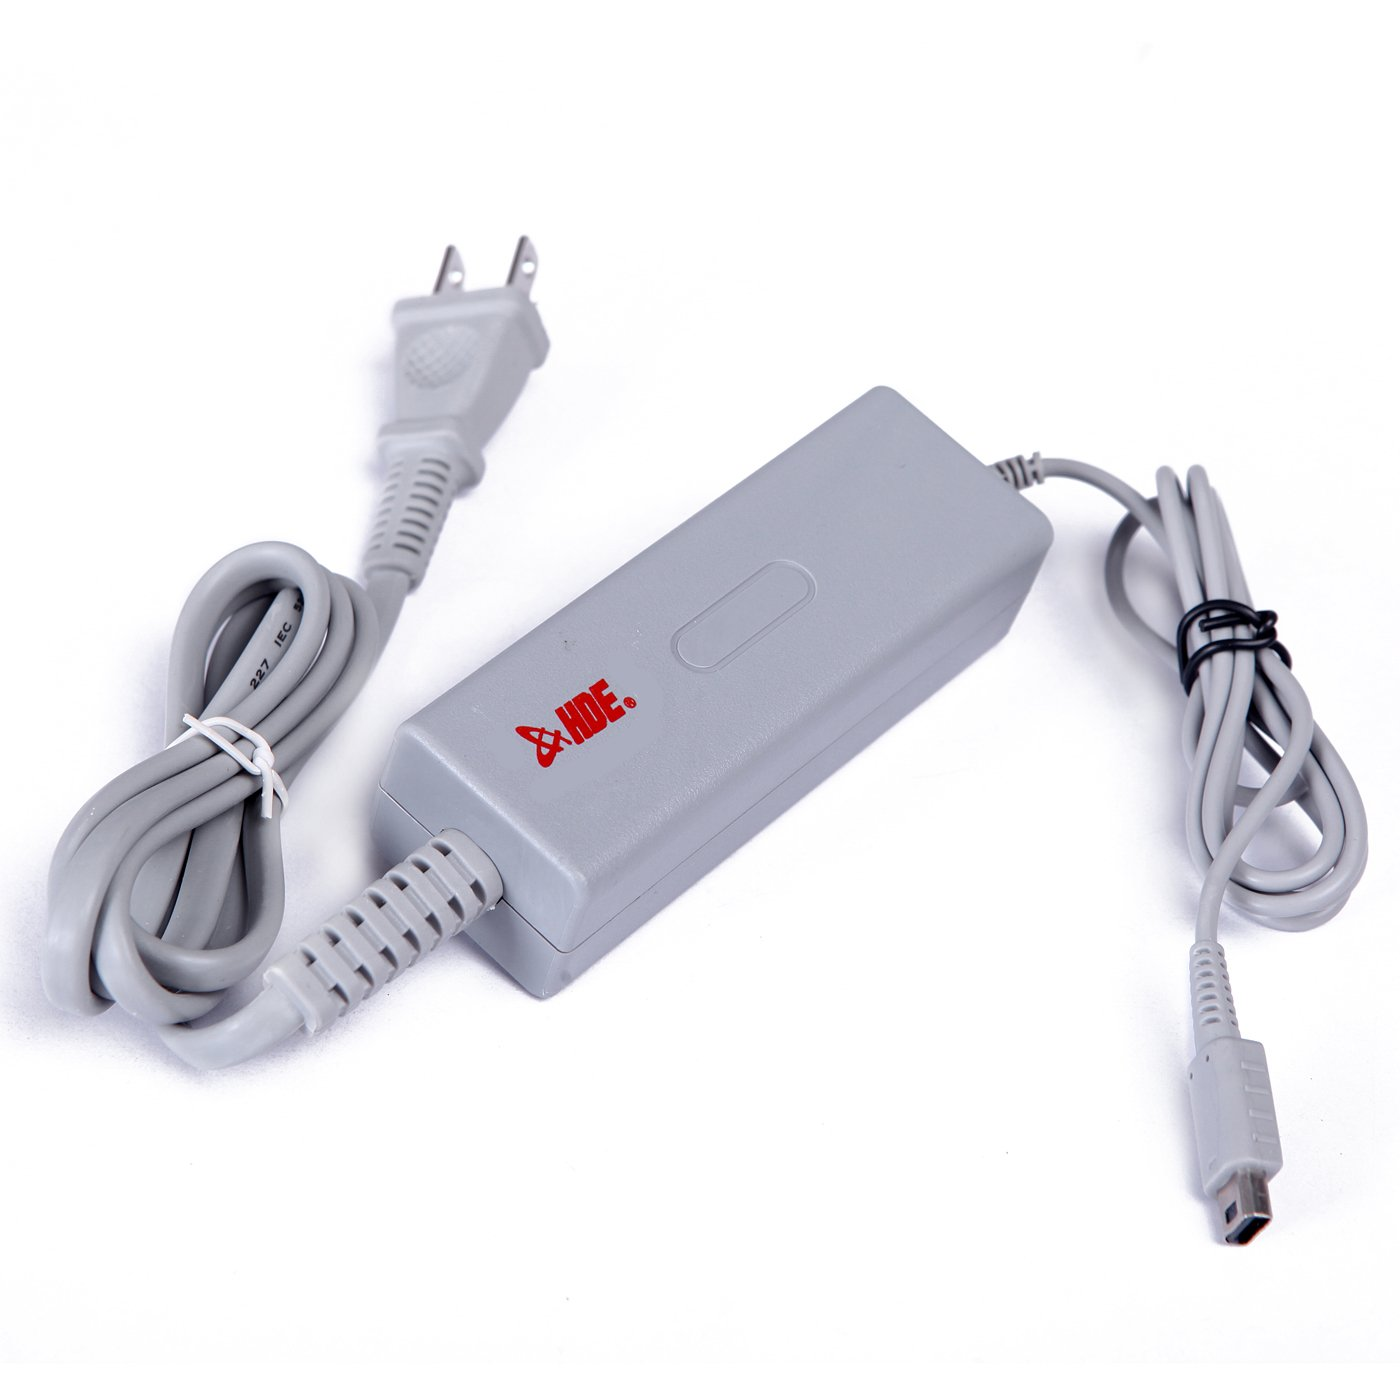 HDE Power Cord for Wii-U Controller Power Supply Brick AC Adapter Charge Cable for Nintendo Wii U Gamepad